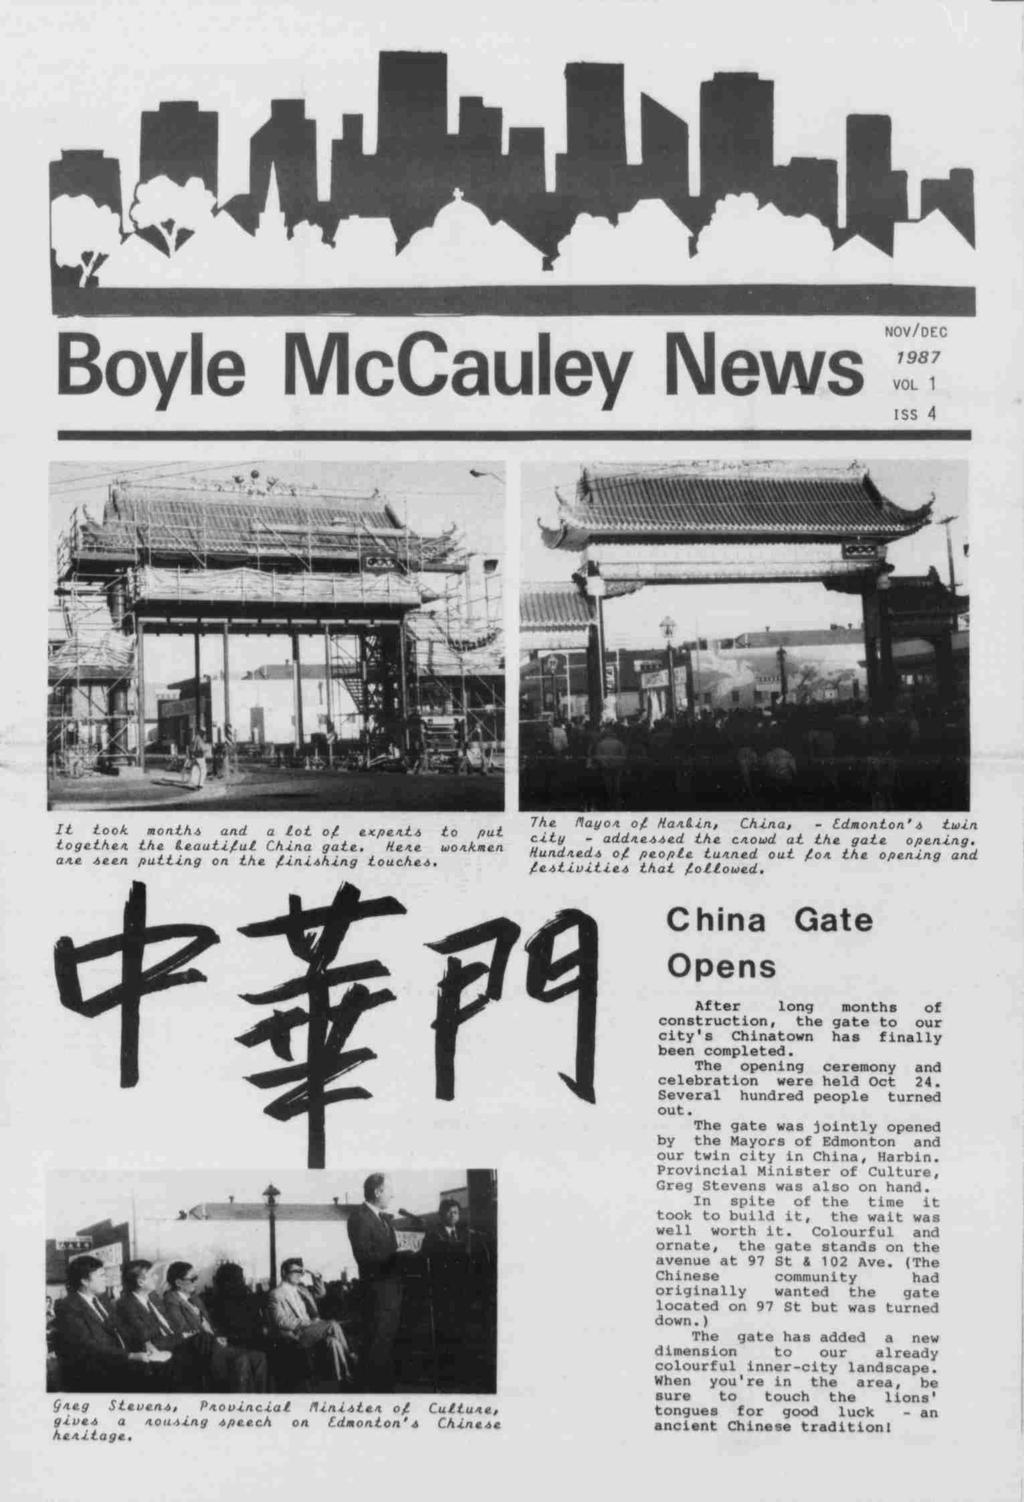 "-- """",..., Boyle McCauley News novdec 987 VOL iss 4.. --'.- r J.. - a I ioo: month and a lot of expert to put city - addreed crowd at gate opening. The Piay on. of HaA.IL."